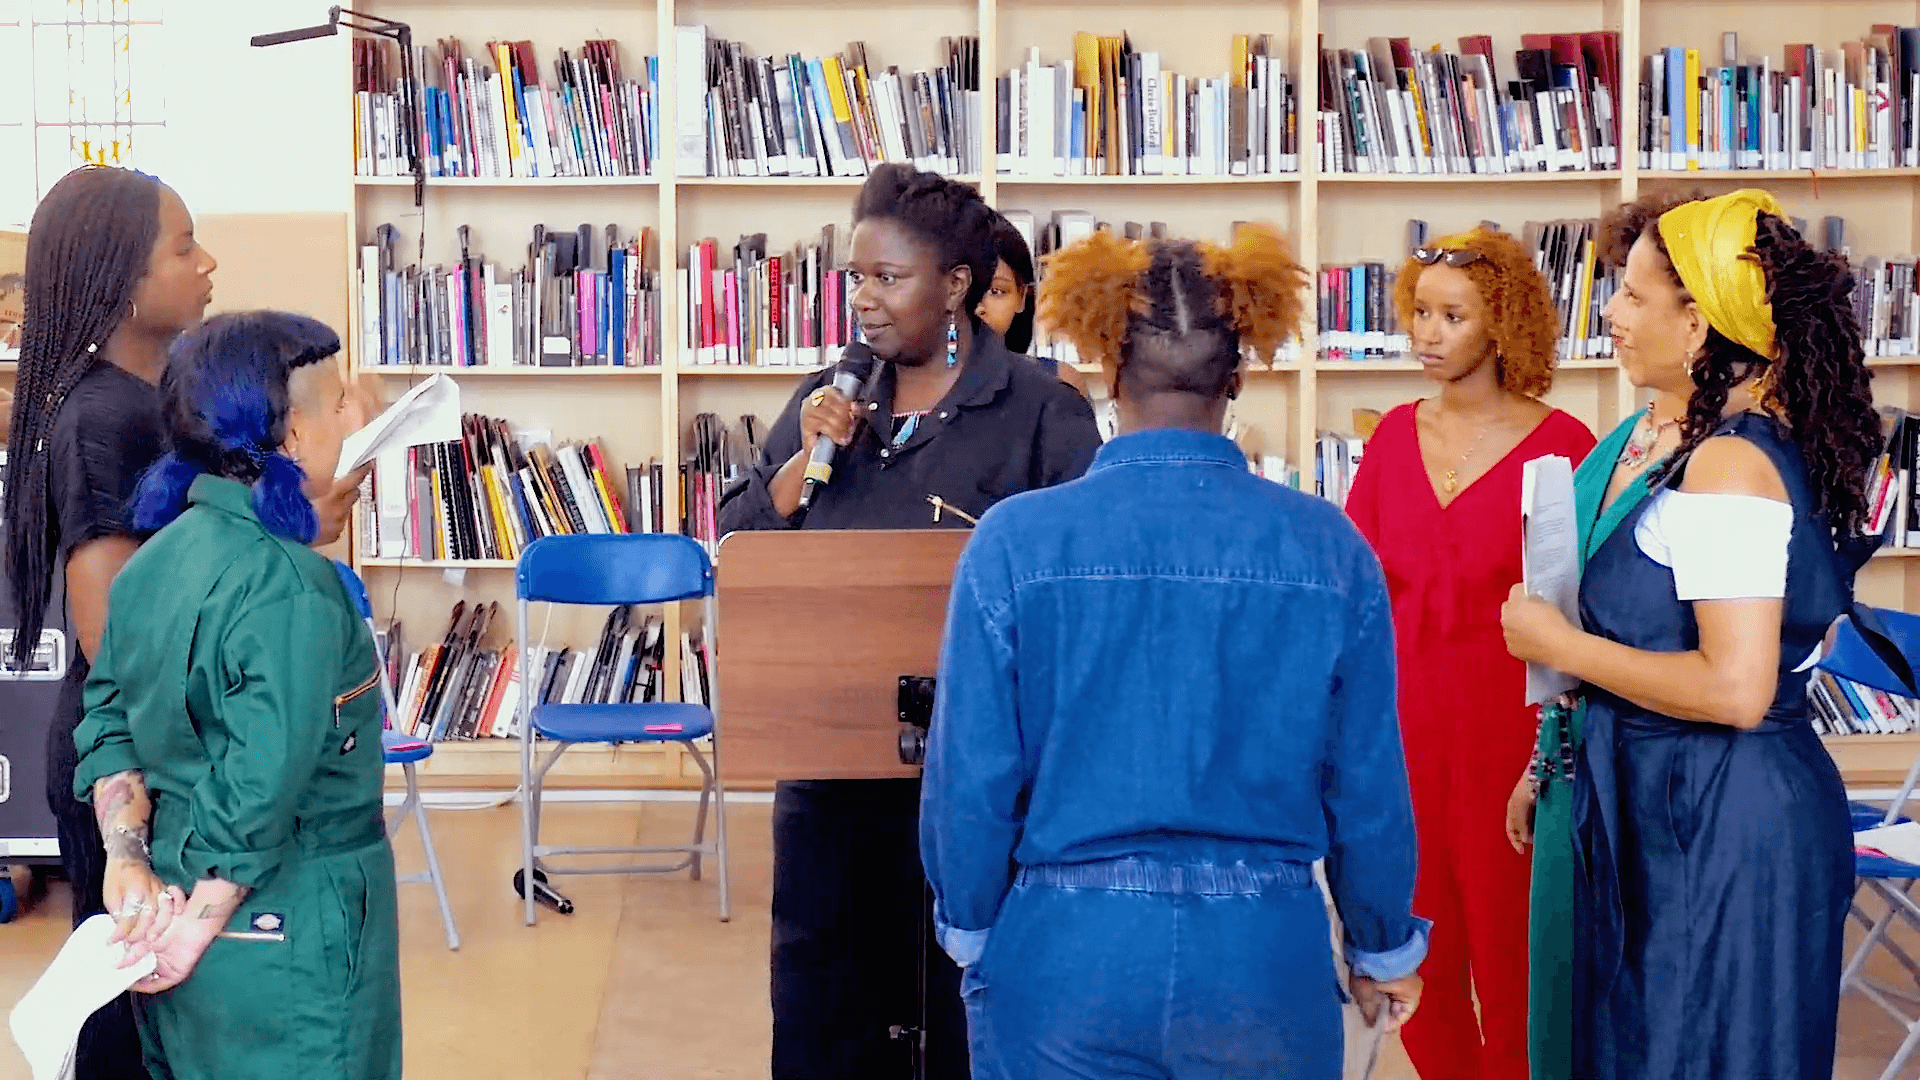 The artist speaks into a microphone surrounded by an intergenerational group of other women of colour.